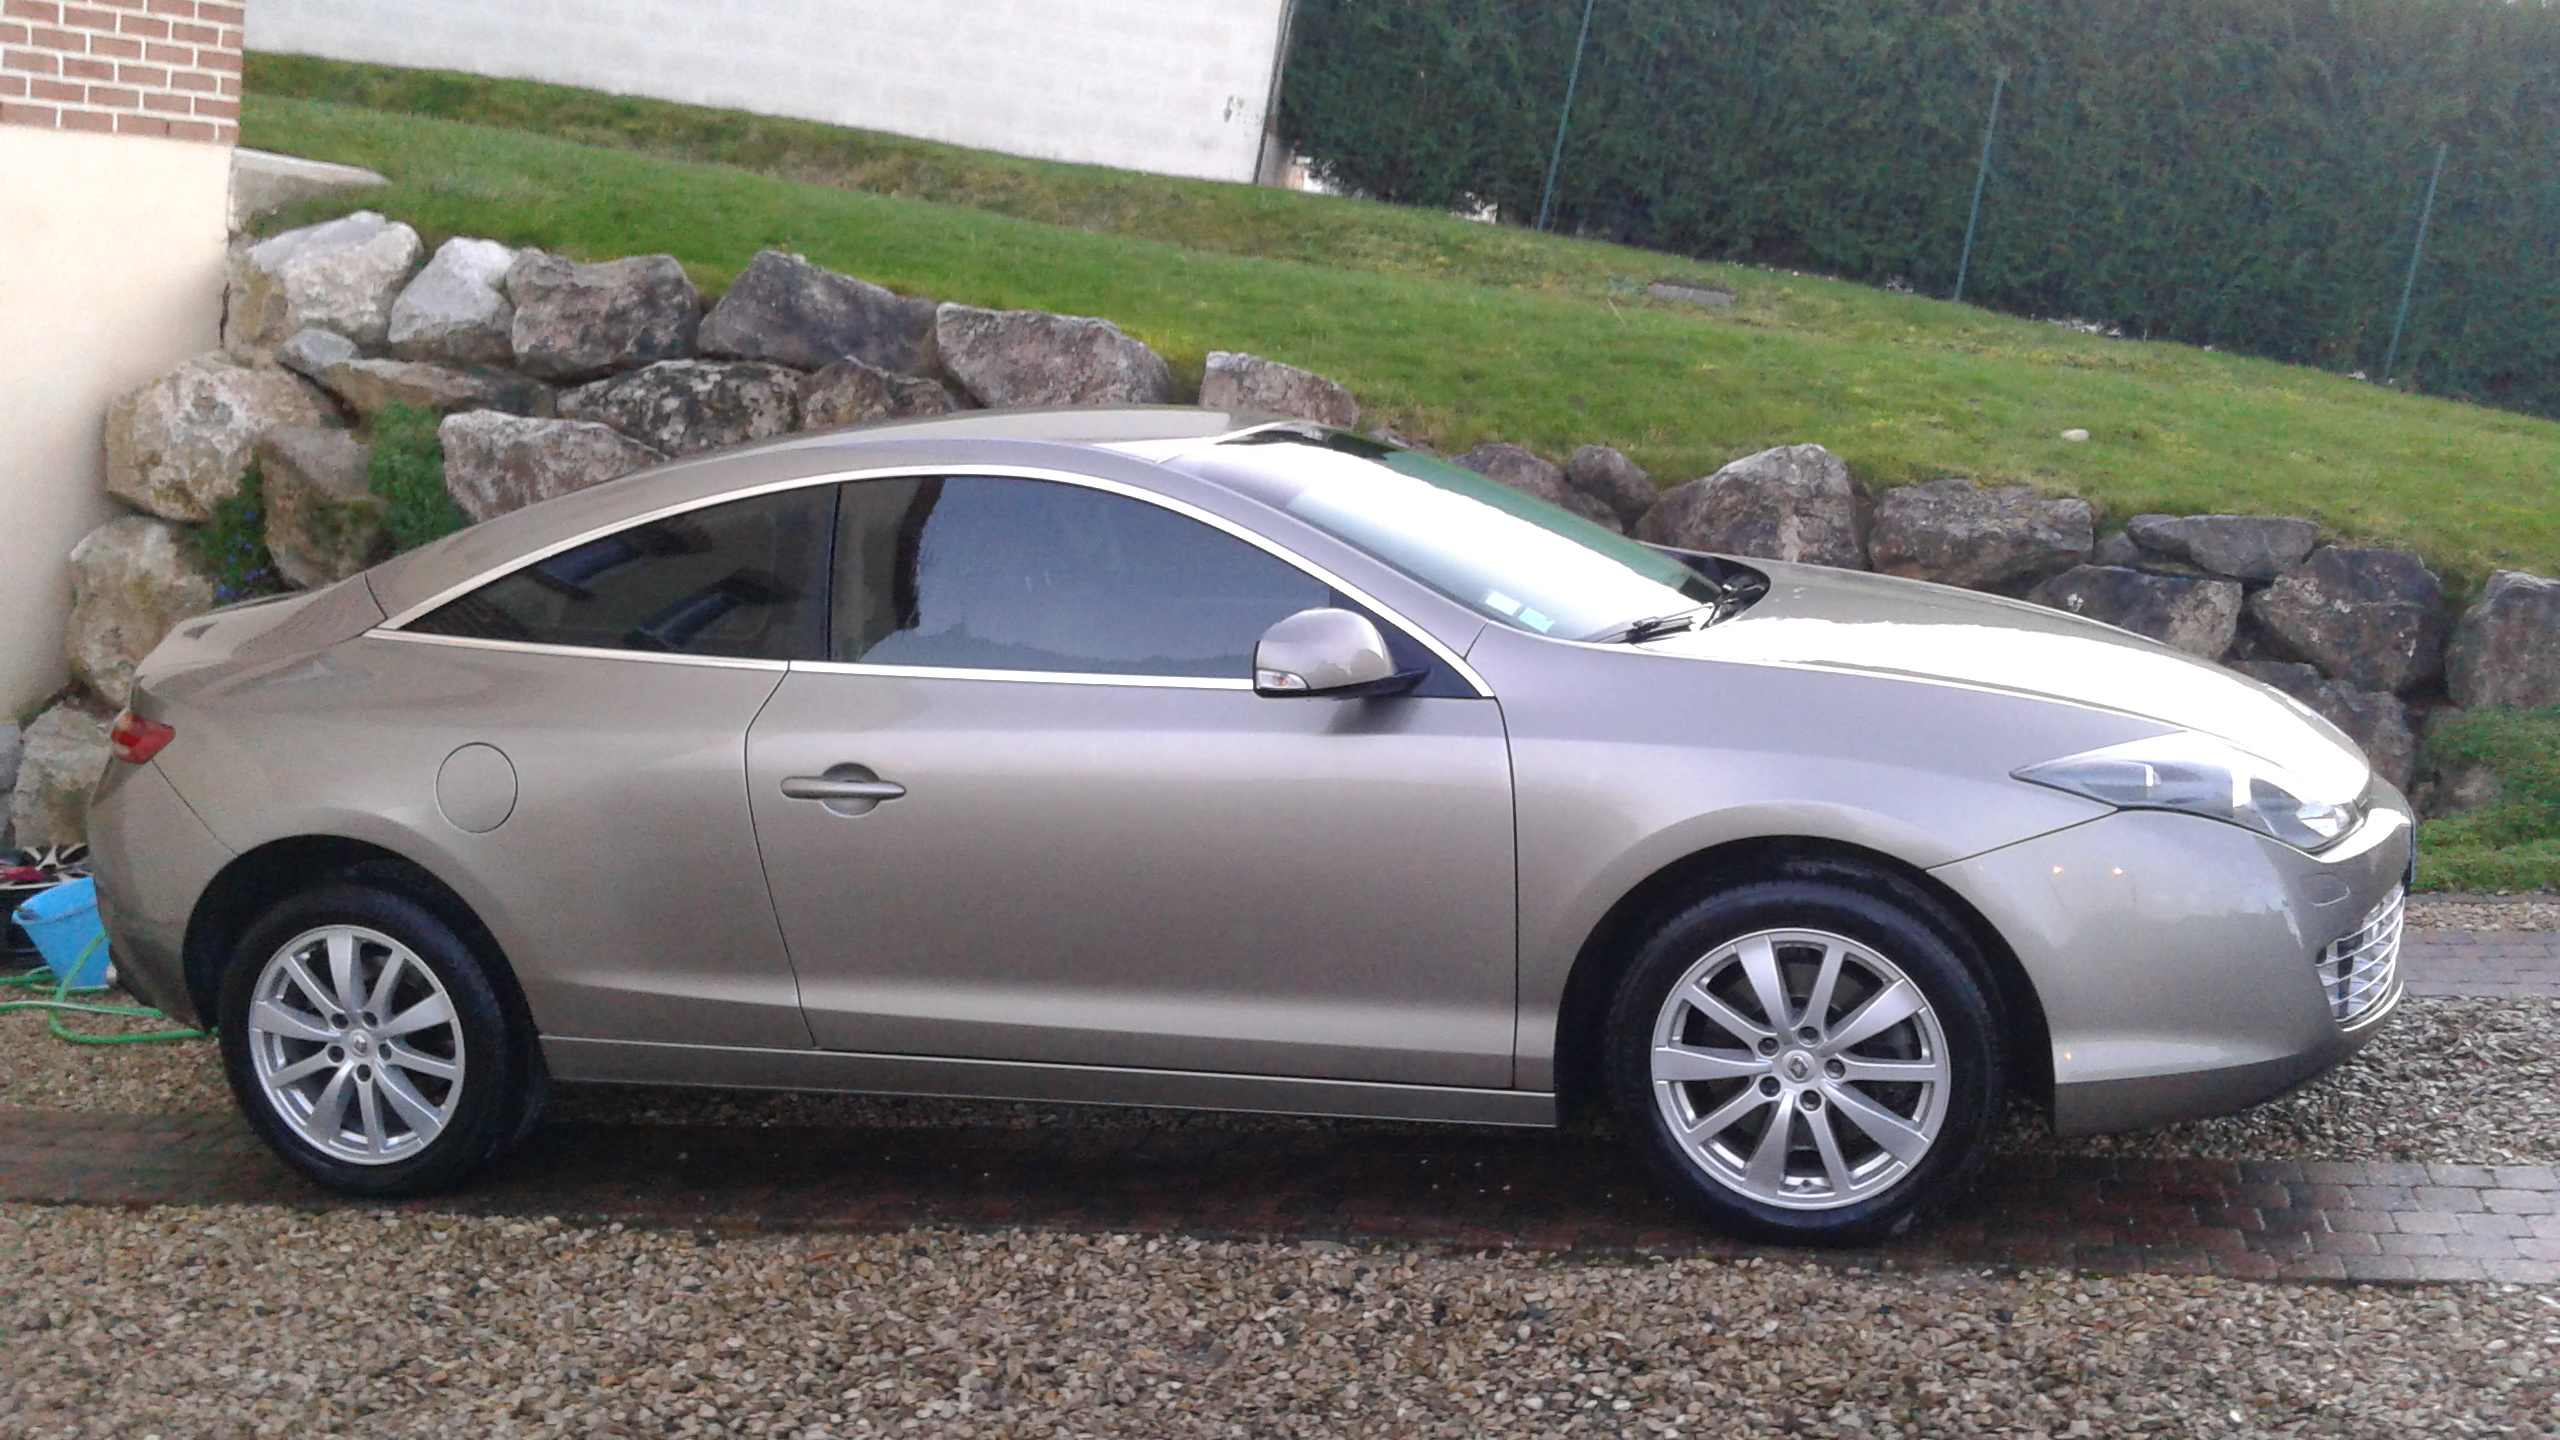 [nathanjo] Laguna III coupé initiale 3.0 dCi 235 - Page 2 20160116171835